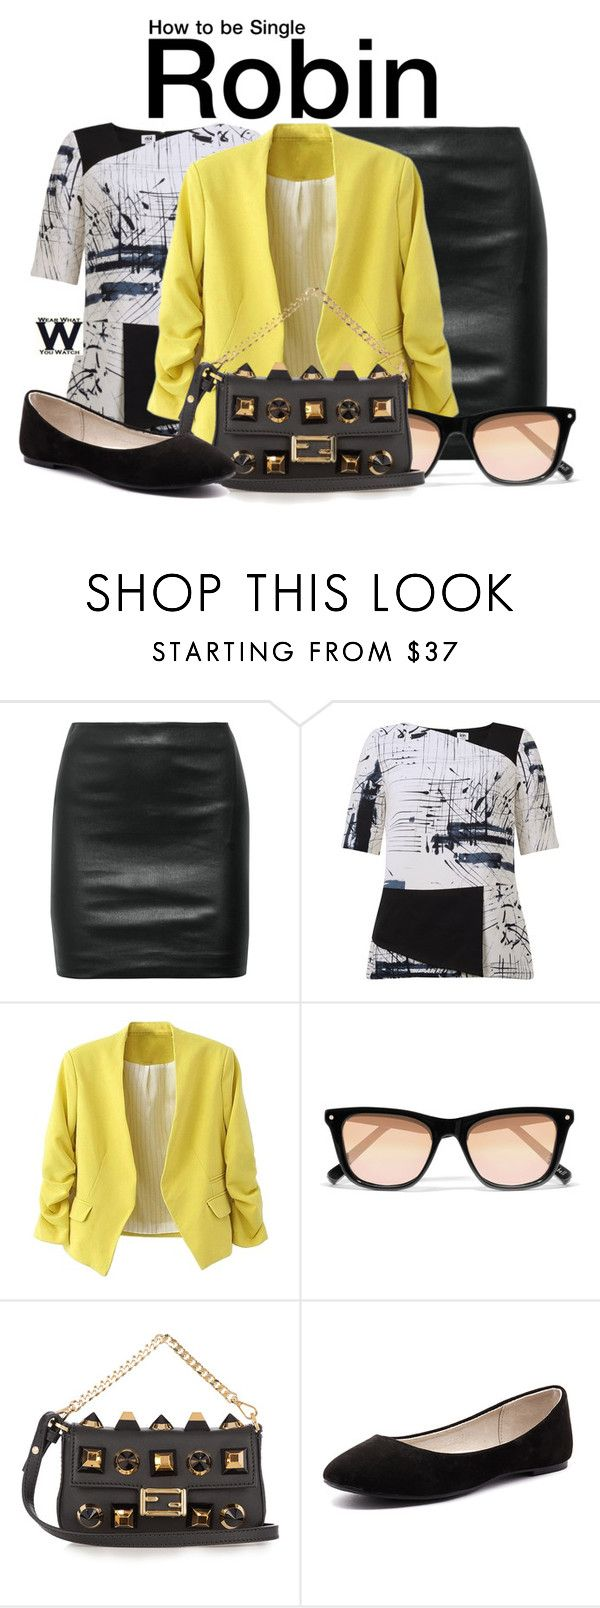 """How to Be Single"" by wearwhatyouwatch ❤ liked on Polyvore featuring The Row, Kin by John Lewis, Elizabeth and James, Fendi, Verali, wearwhatyouwatch and film"